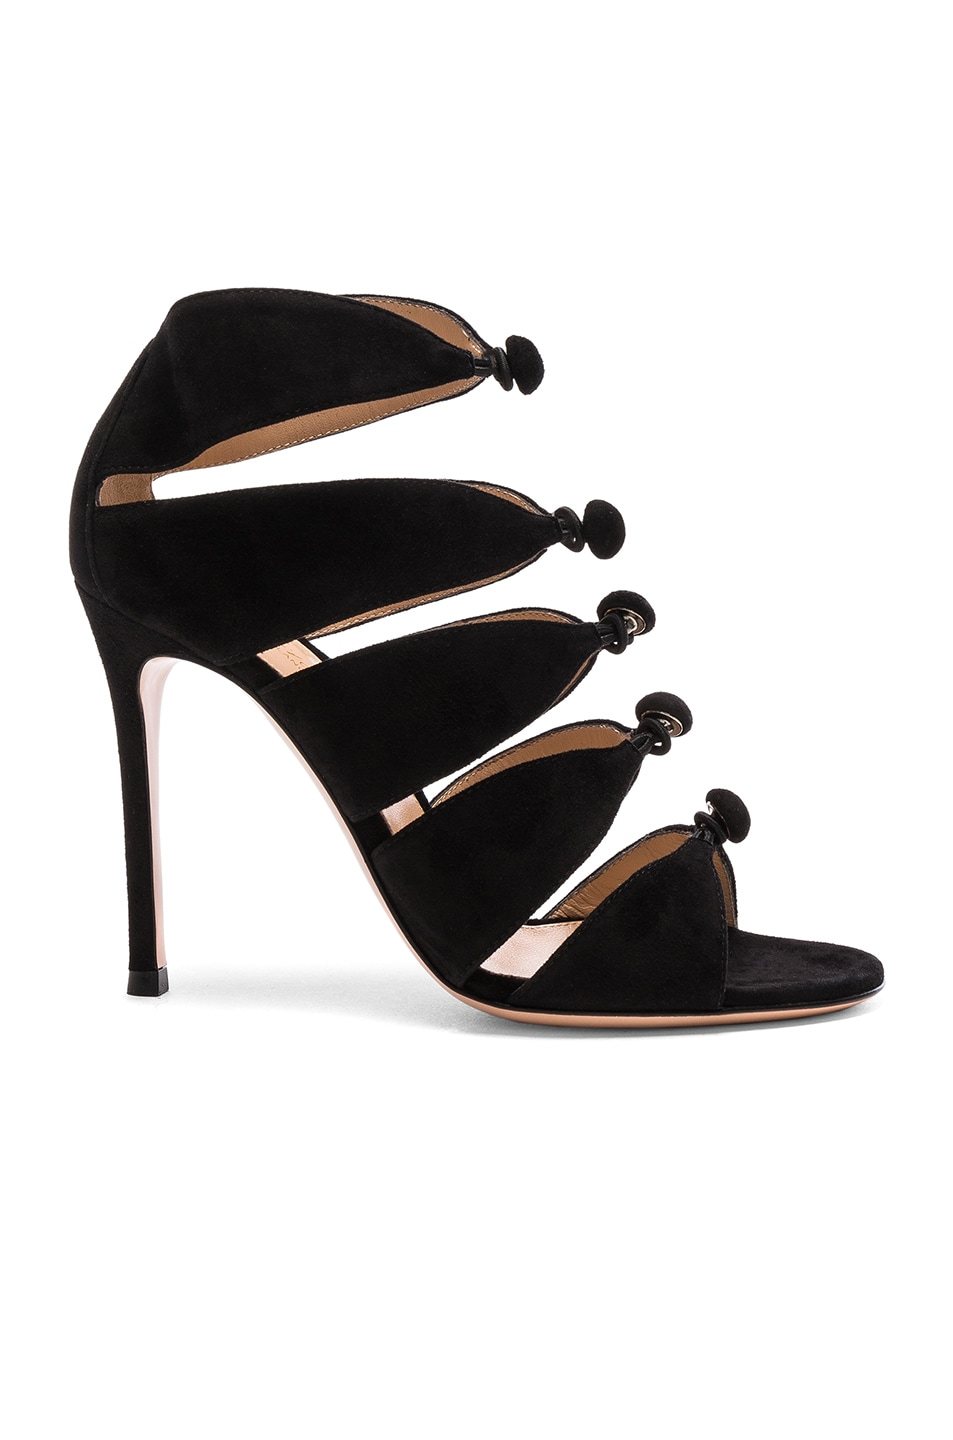 Image 1 of Gianvito Rossi Suede Knot Heels in Black